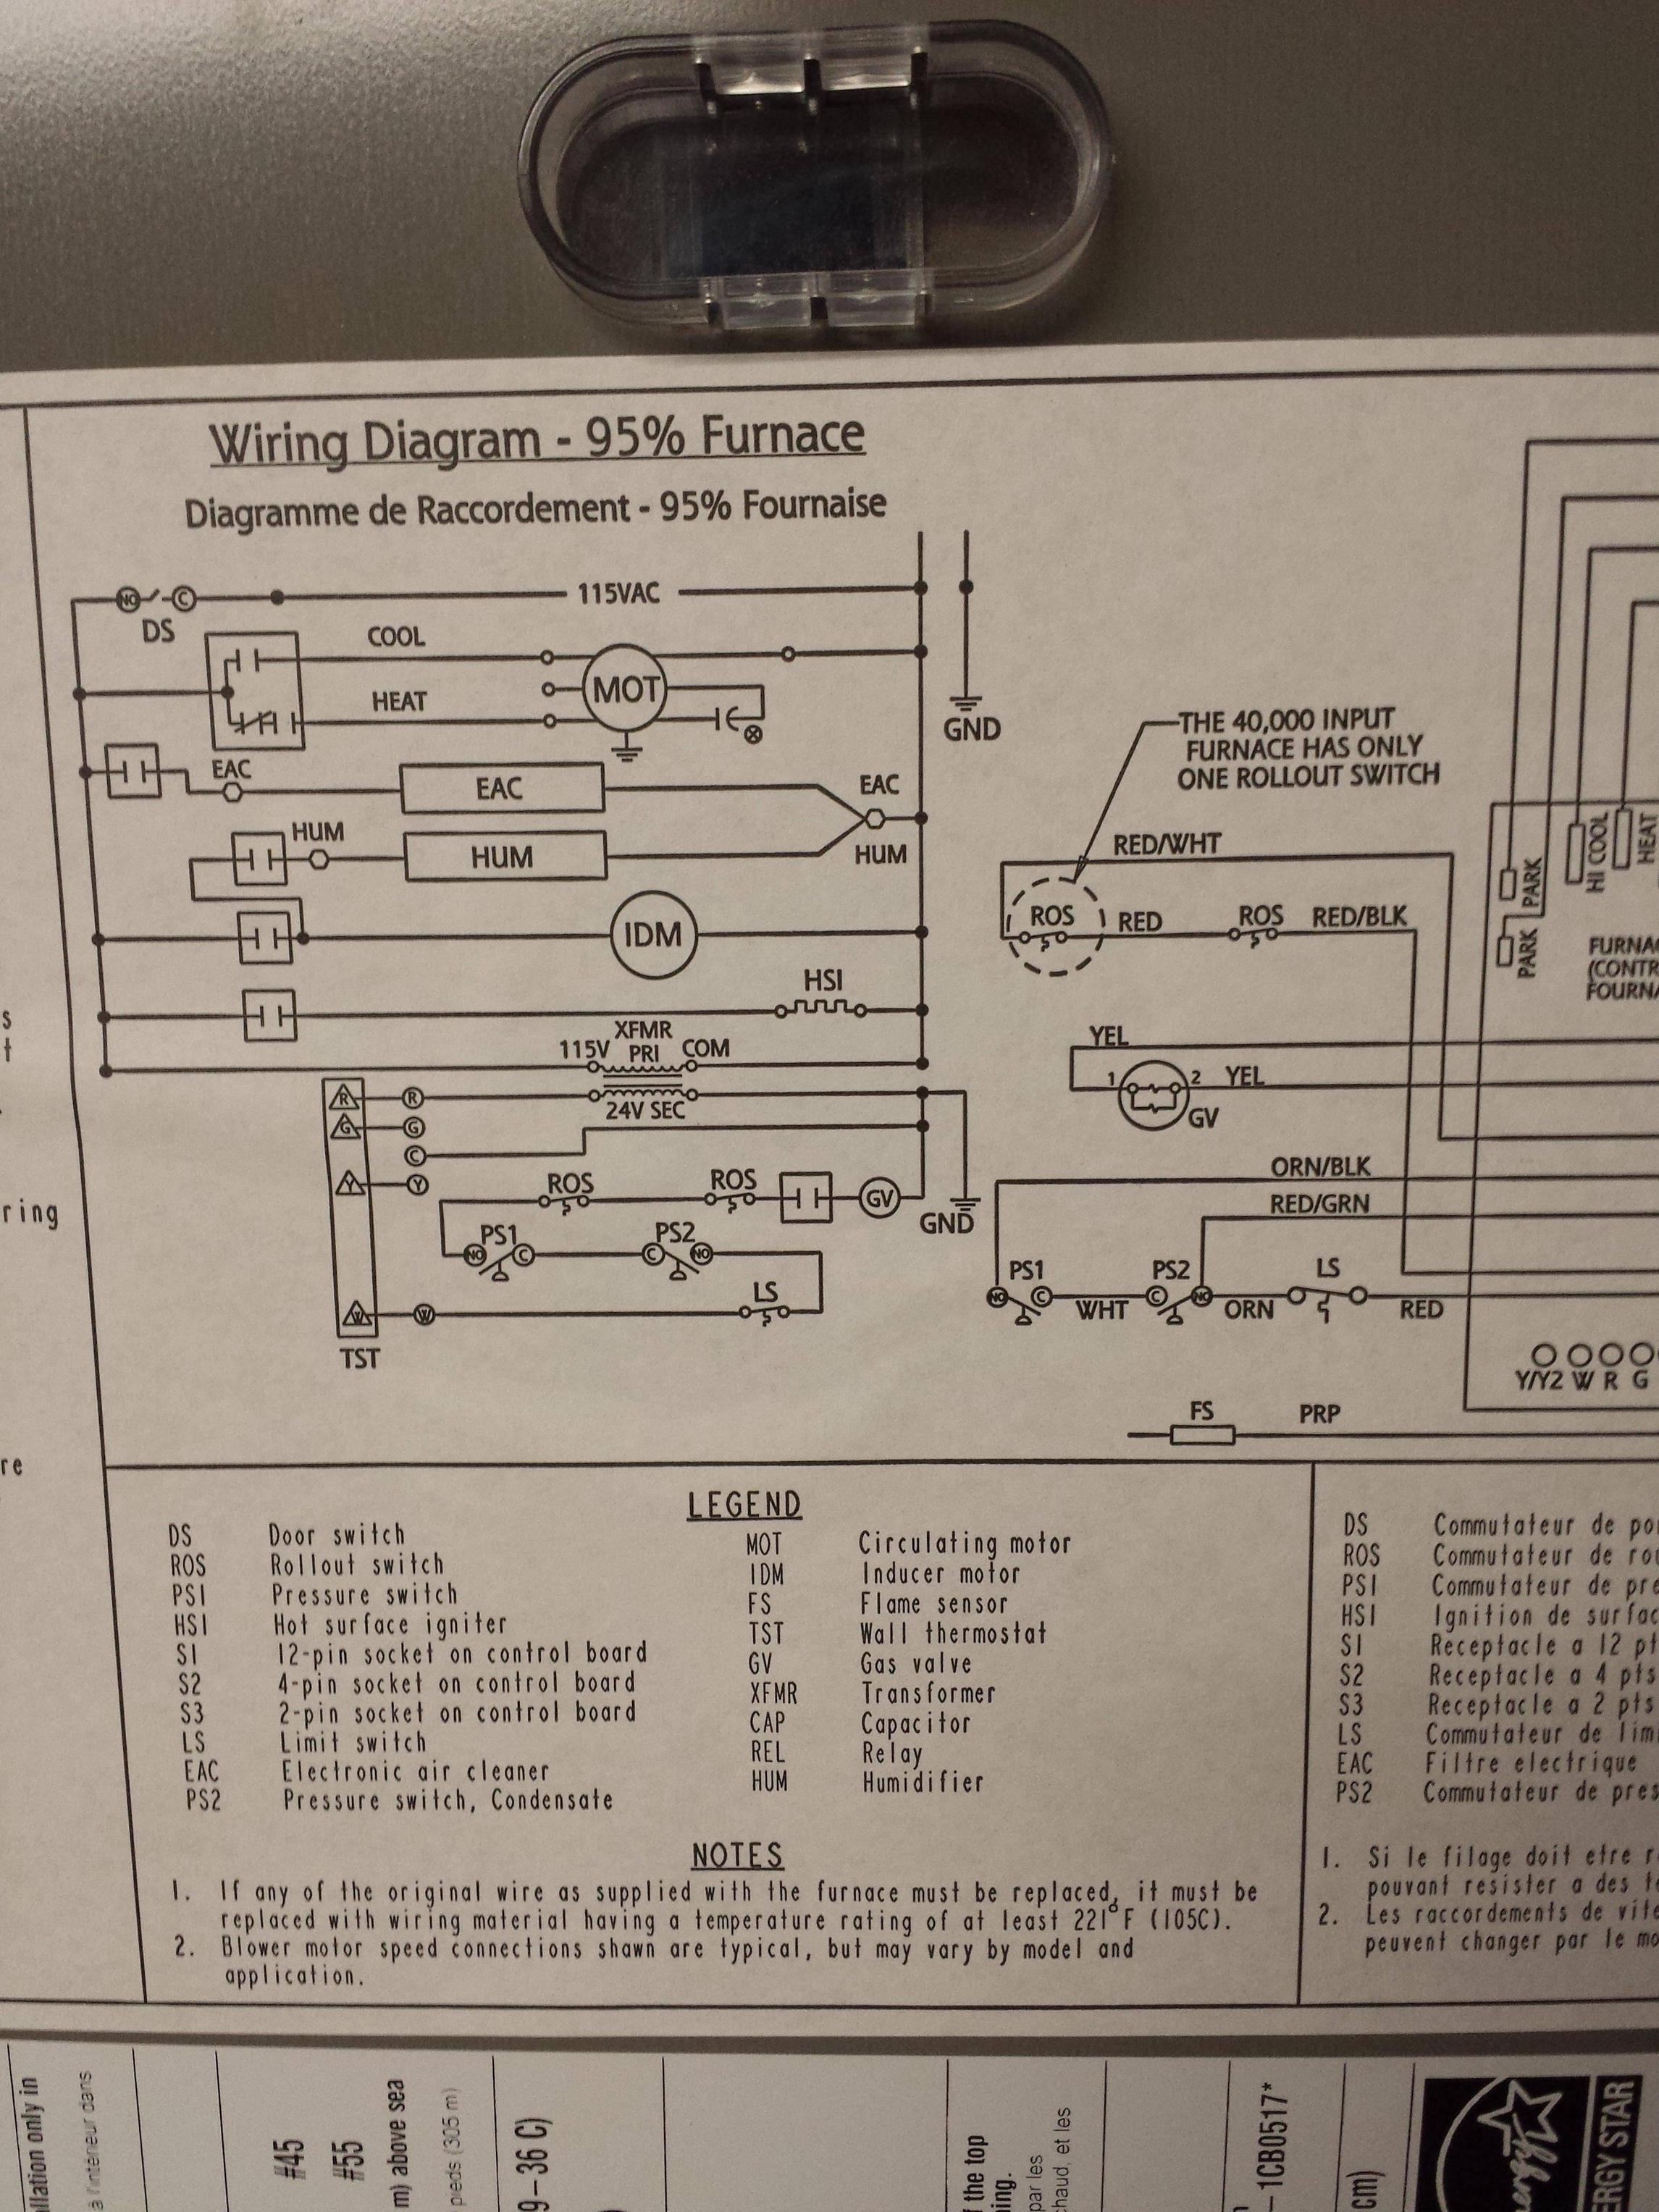 Trane Heat Pump Wiring Diagram Schematic Wiring Harness Wiring